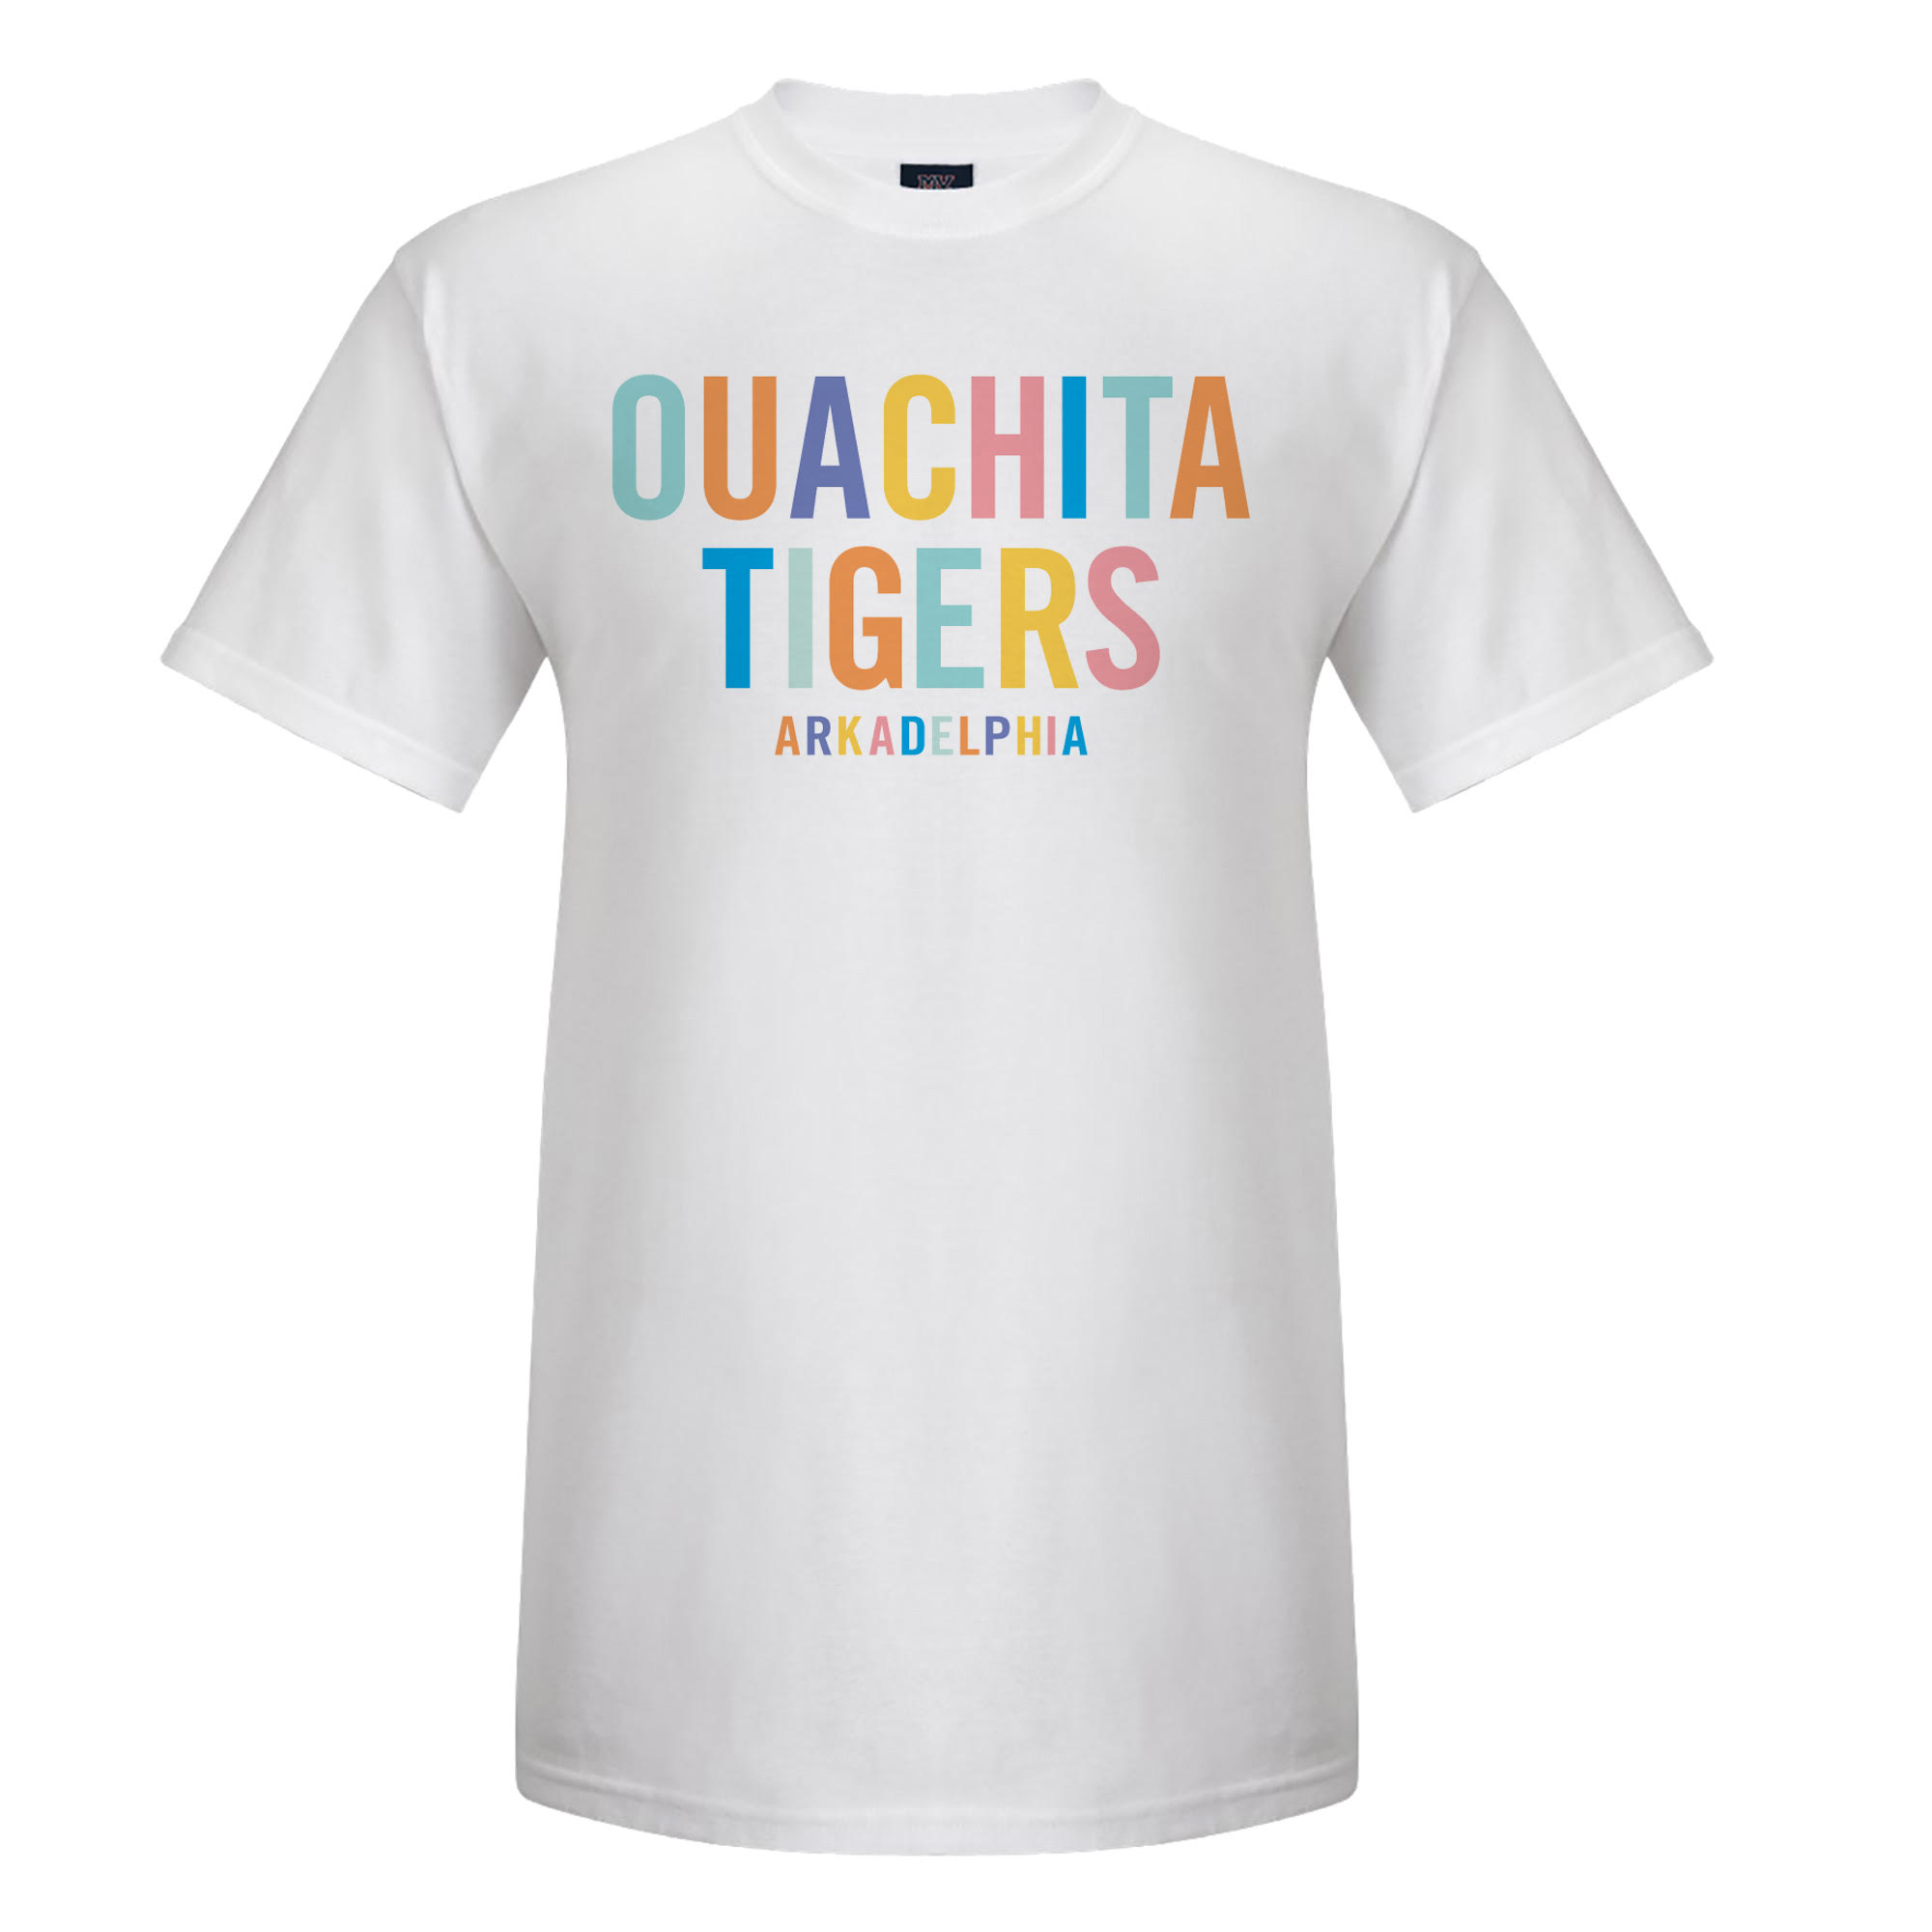 OUACHITA TIGERS RAINBOW LETTER TEE